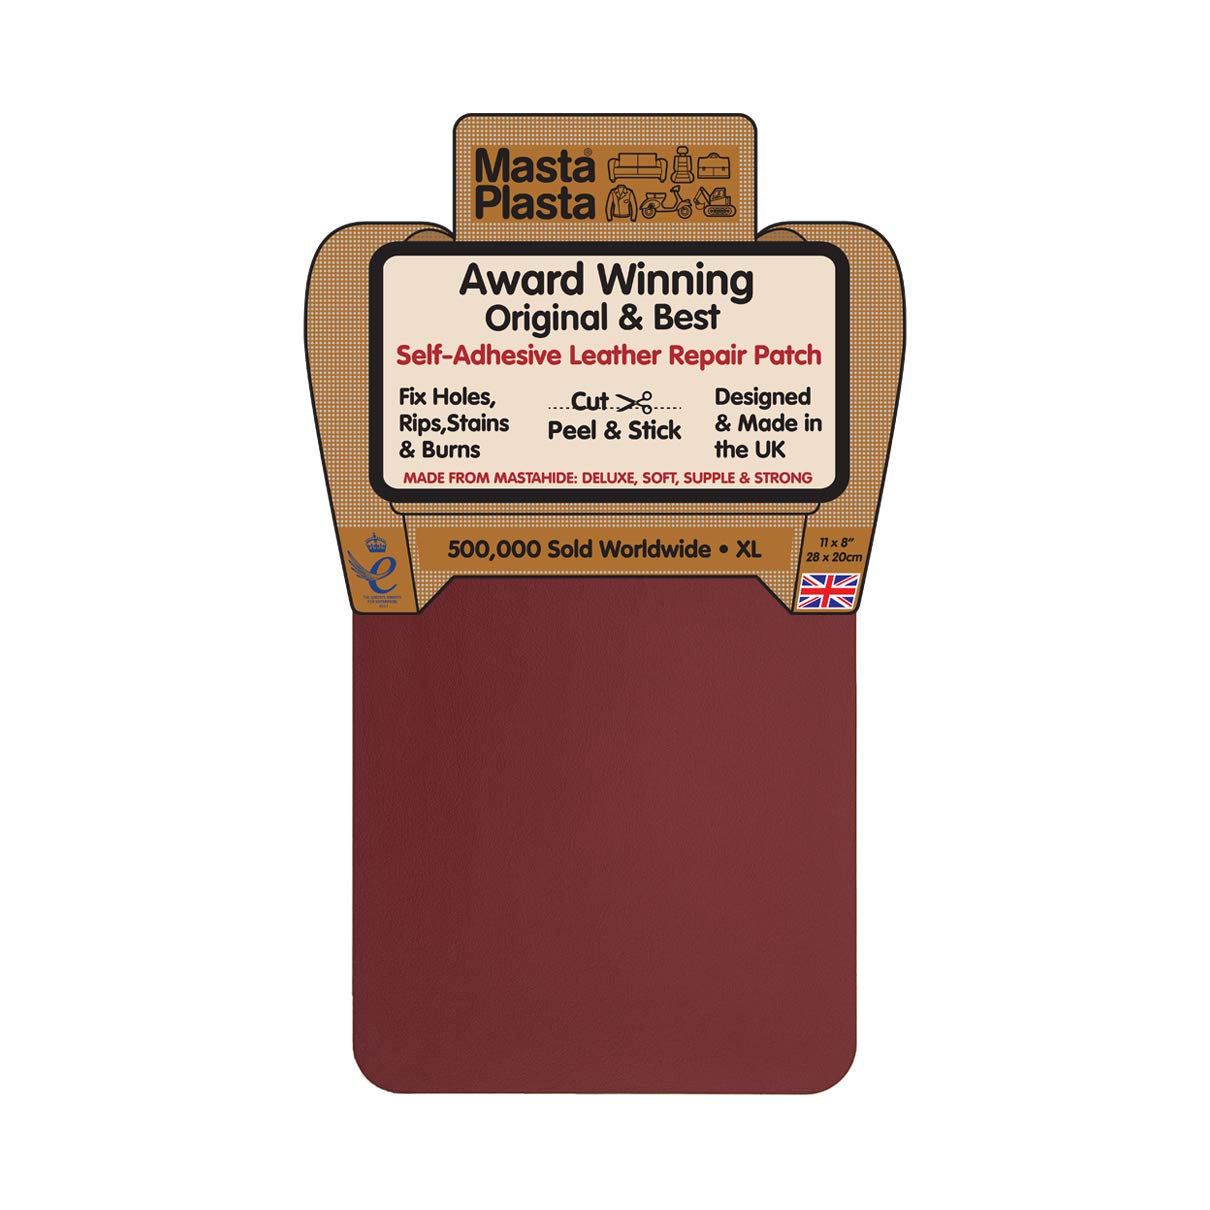 MastaPlasta Self-Adhesive Patch for Leather and Vinyl Repair, XL Plain, Red -